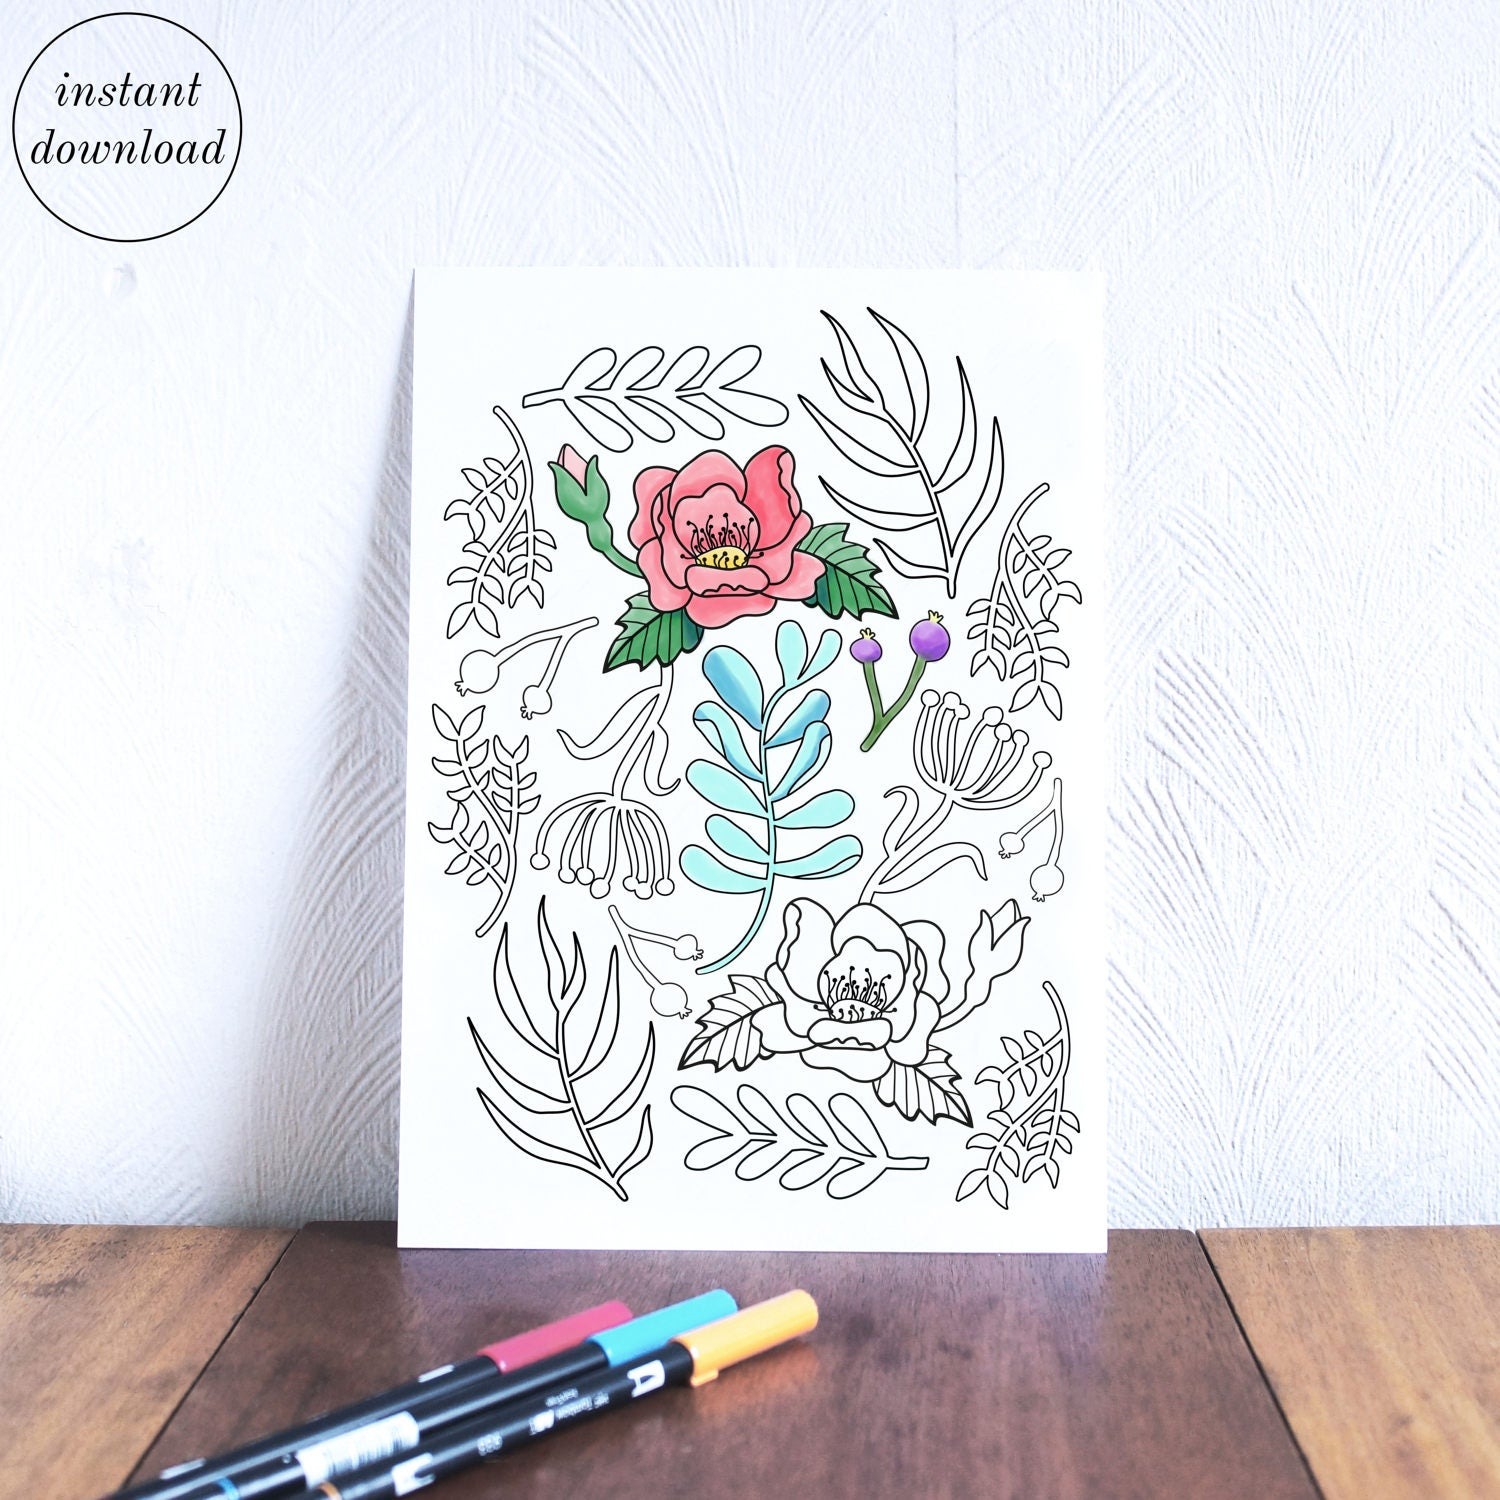 Botanical art coloring book - This Is A Digital File